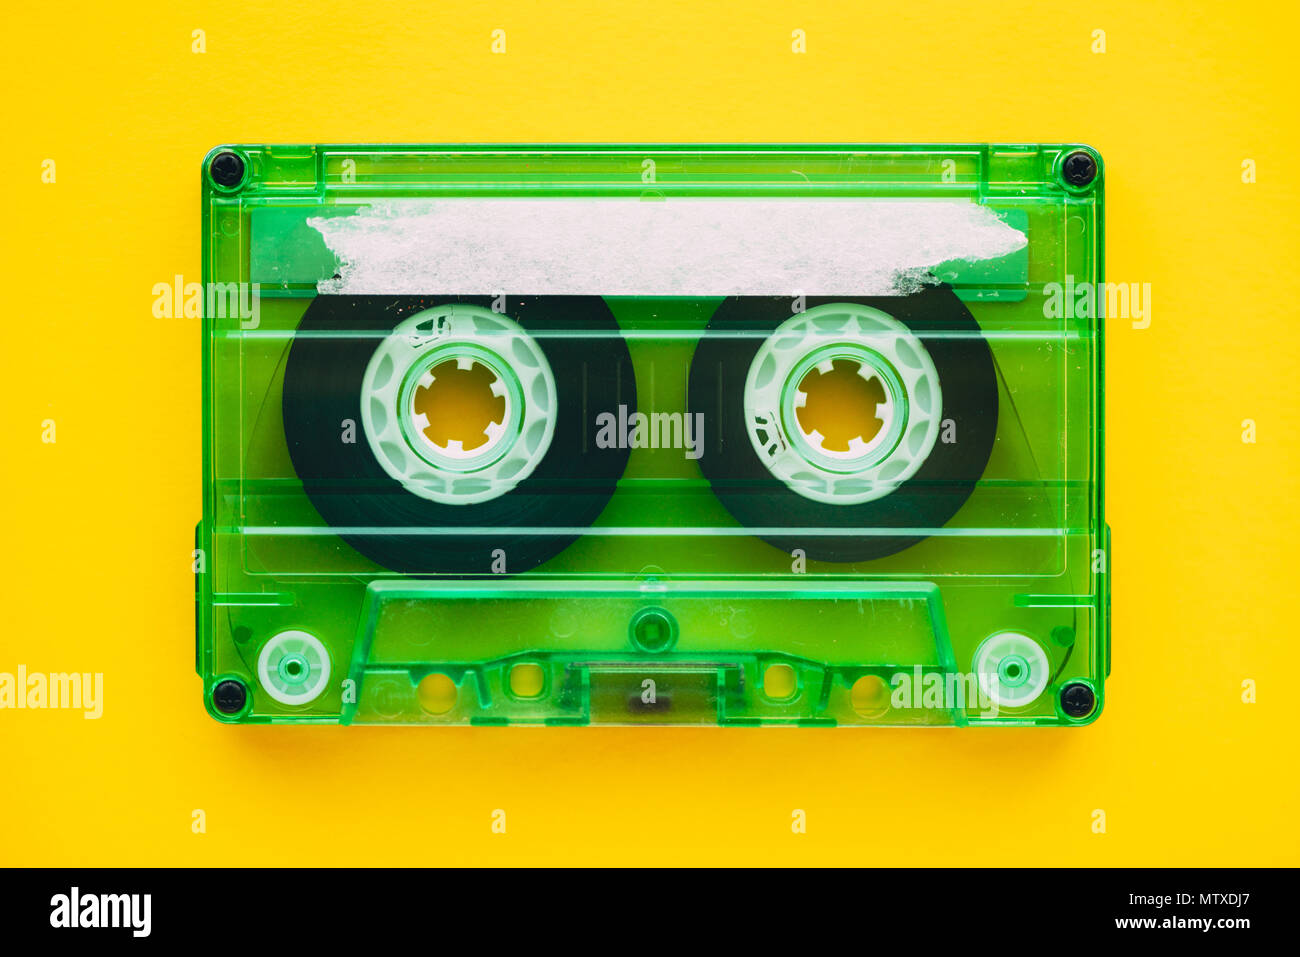 Audio cassette tape on yellow background, retro vintage technology - Stock Image